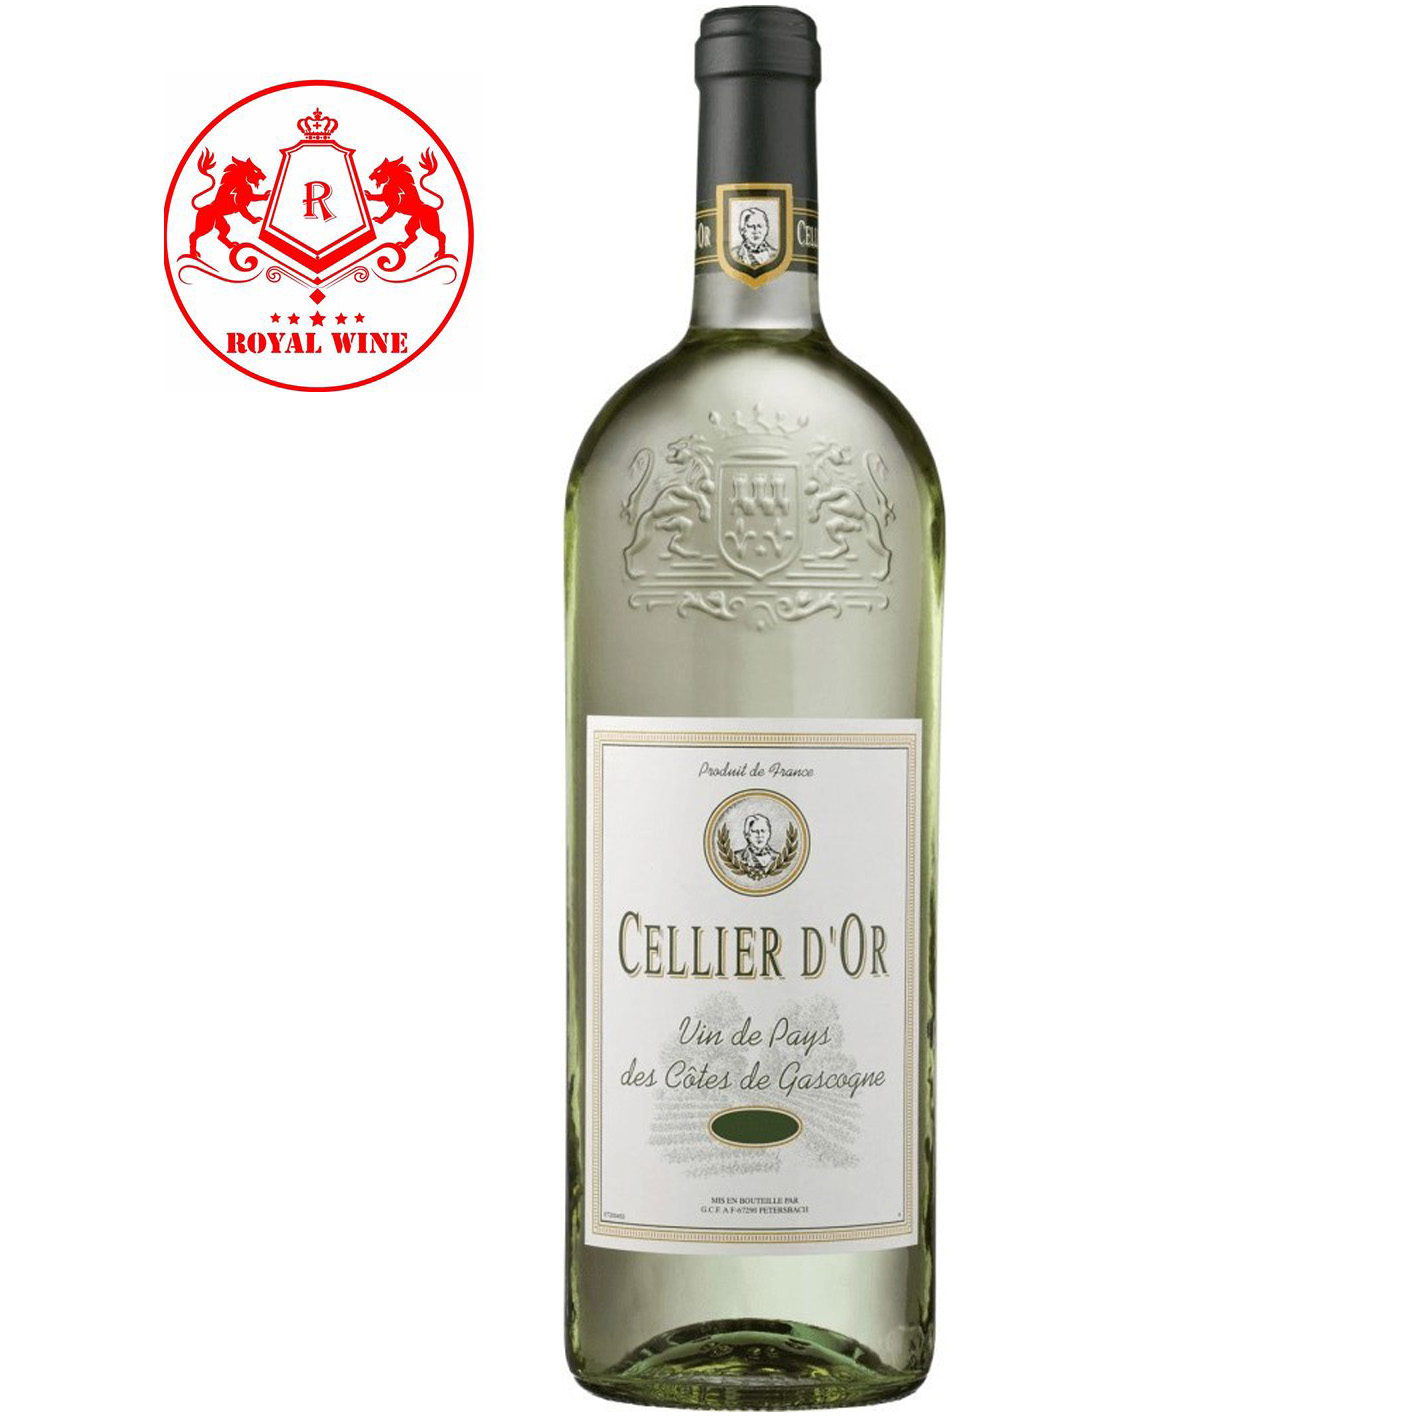 CELLIER D'OR White